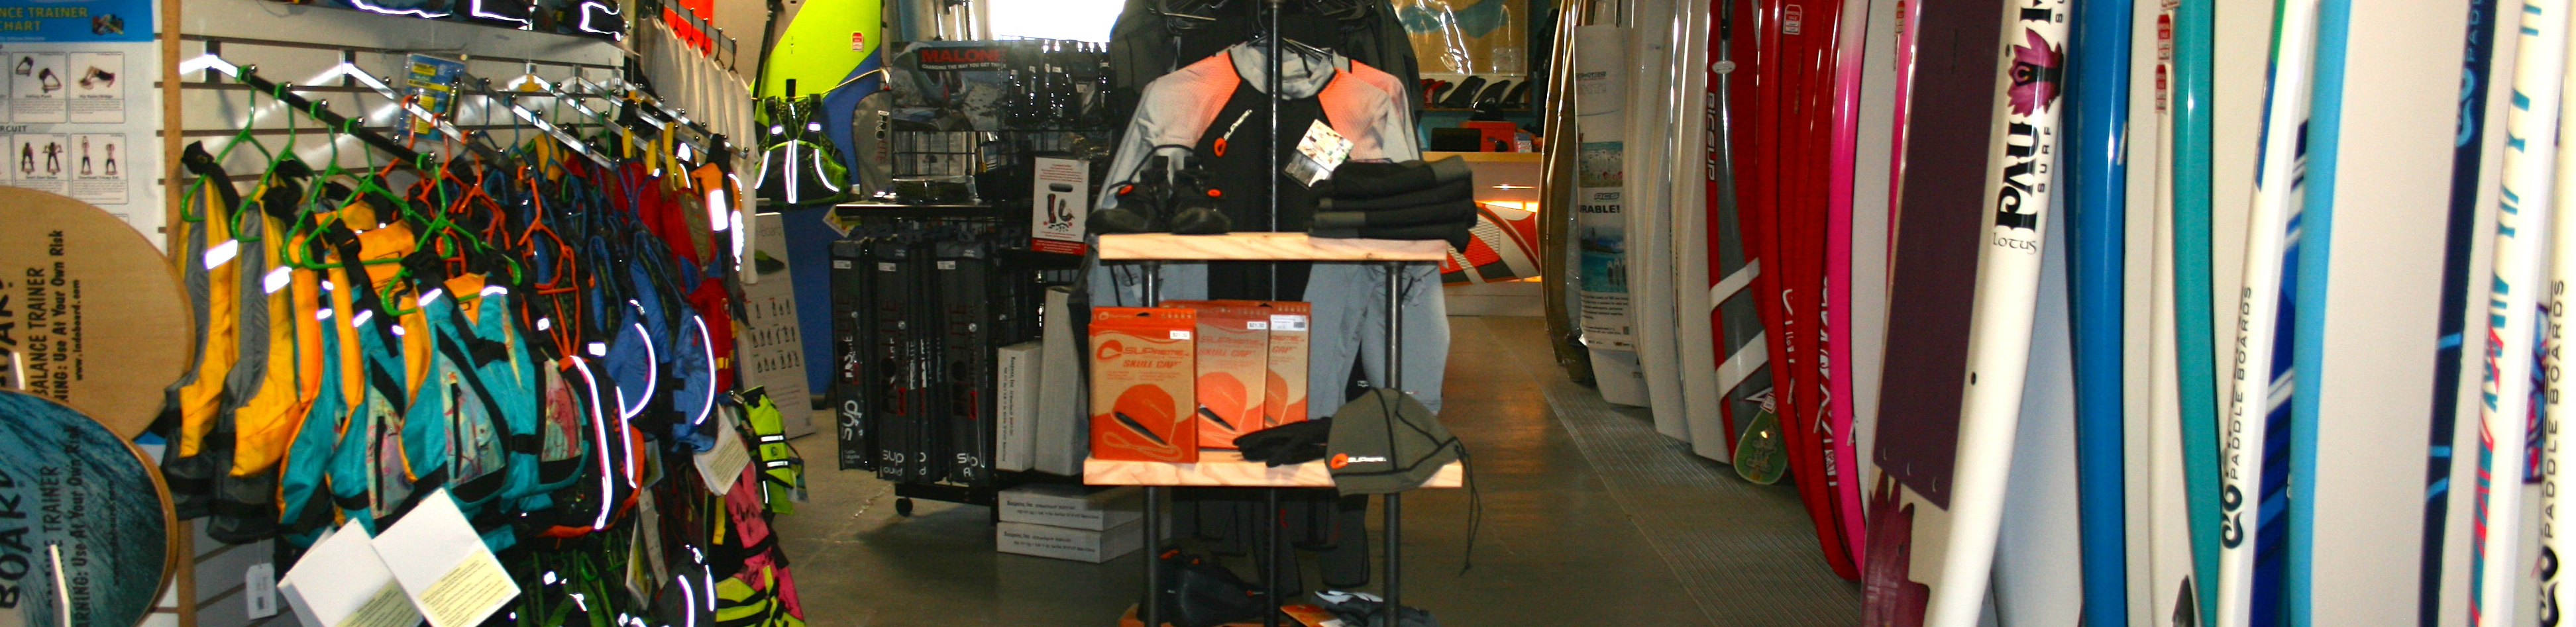 sup gear in paddle shop.jpg